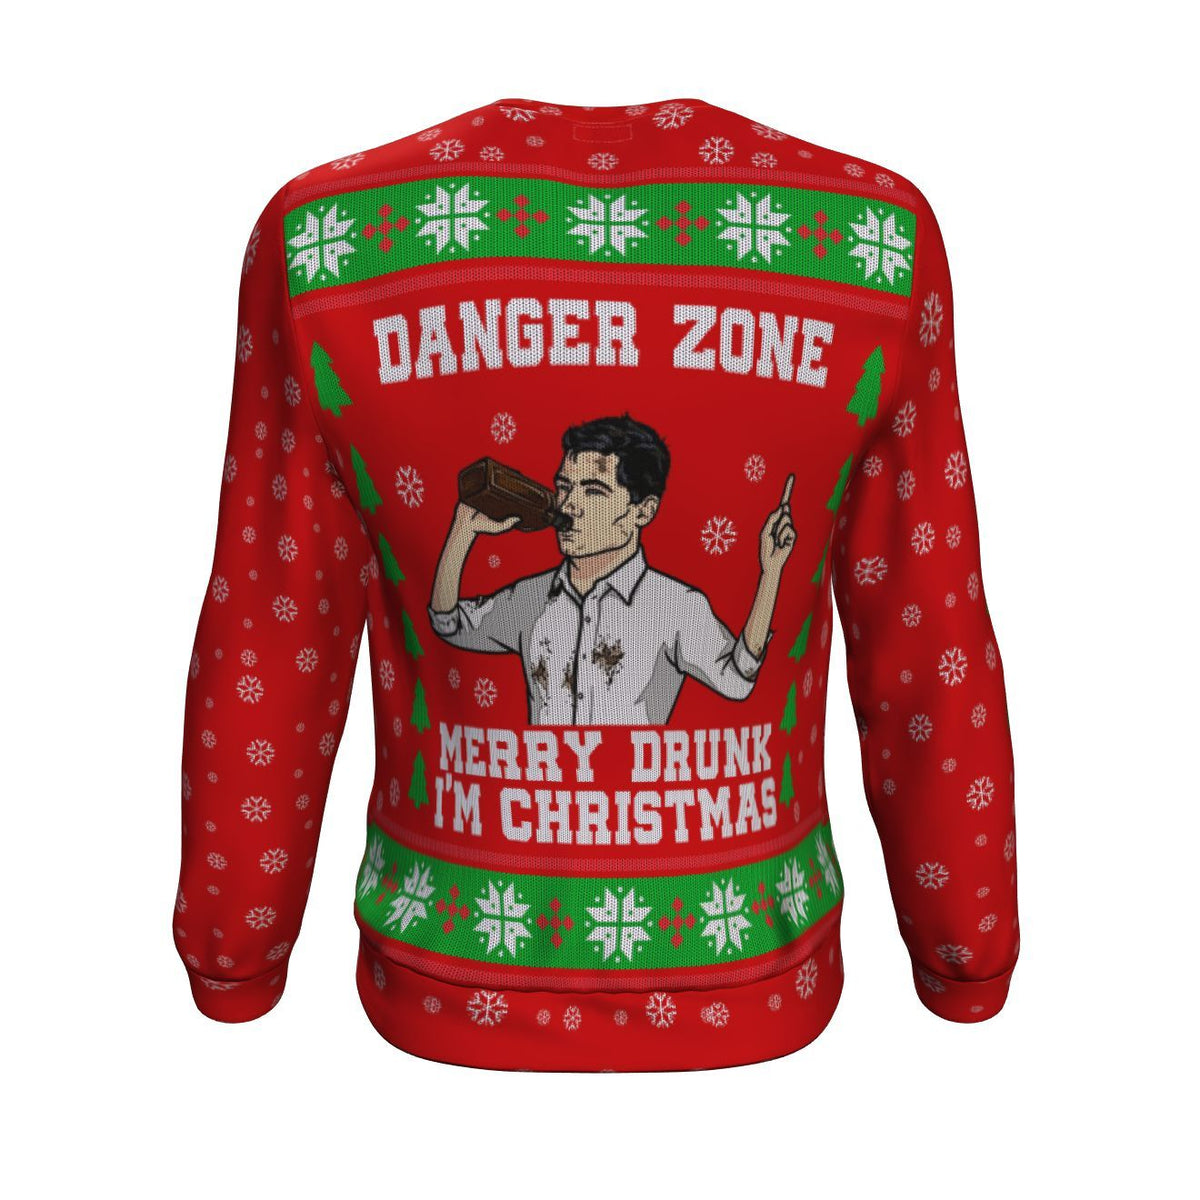 Merry Drunk I'm Christmas Sterling Archer Premium Ugly Christmas Sweater